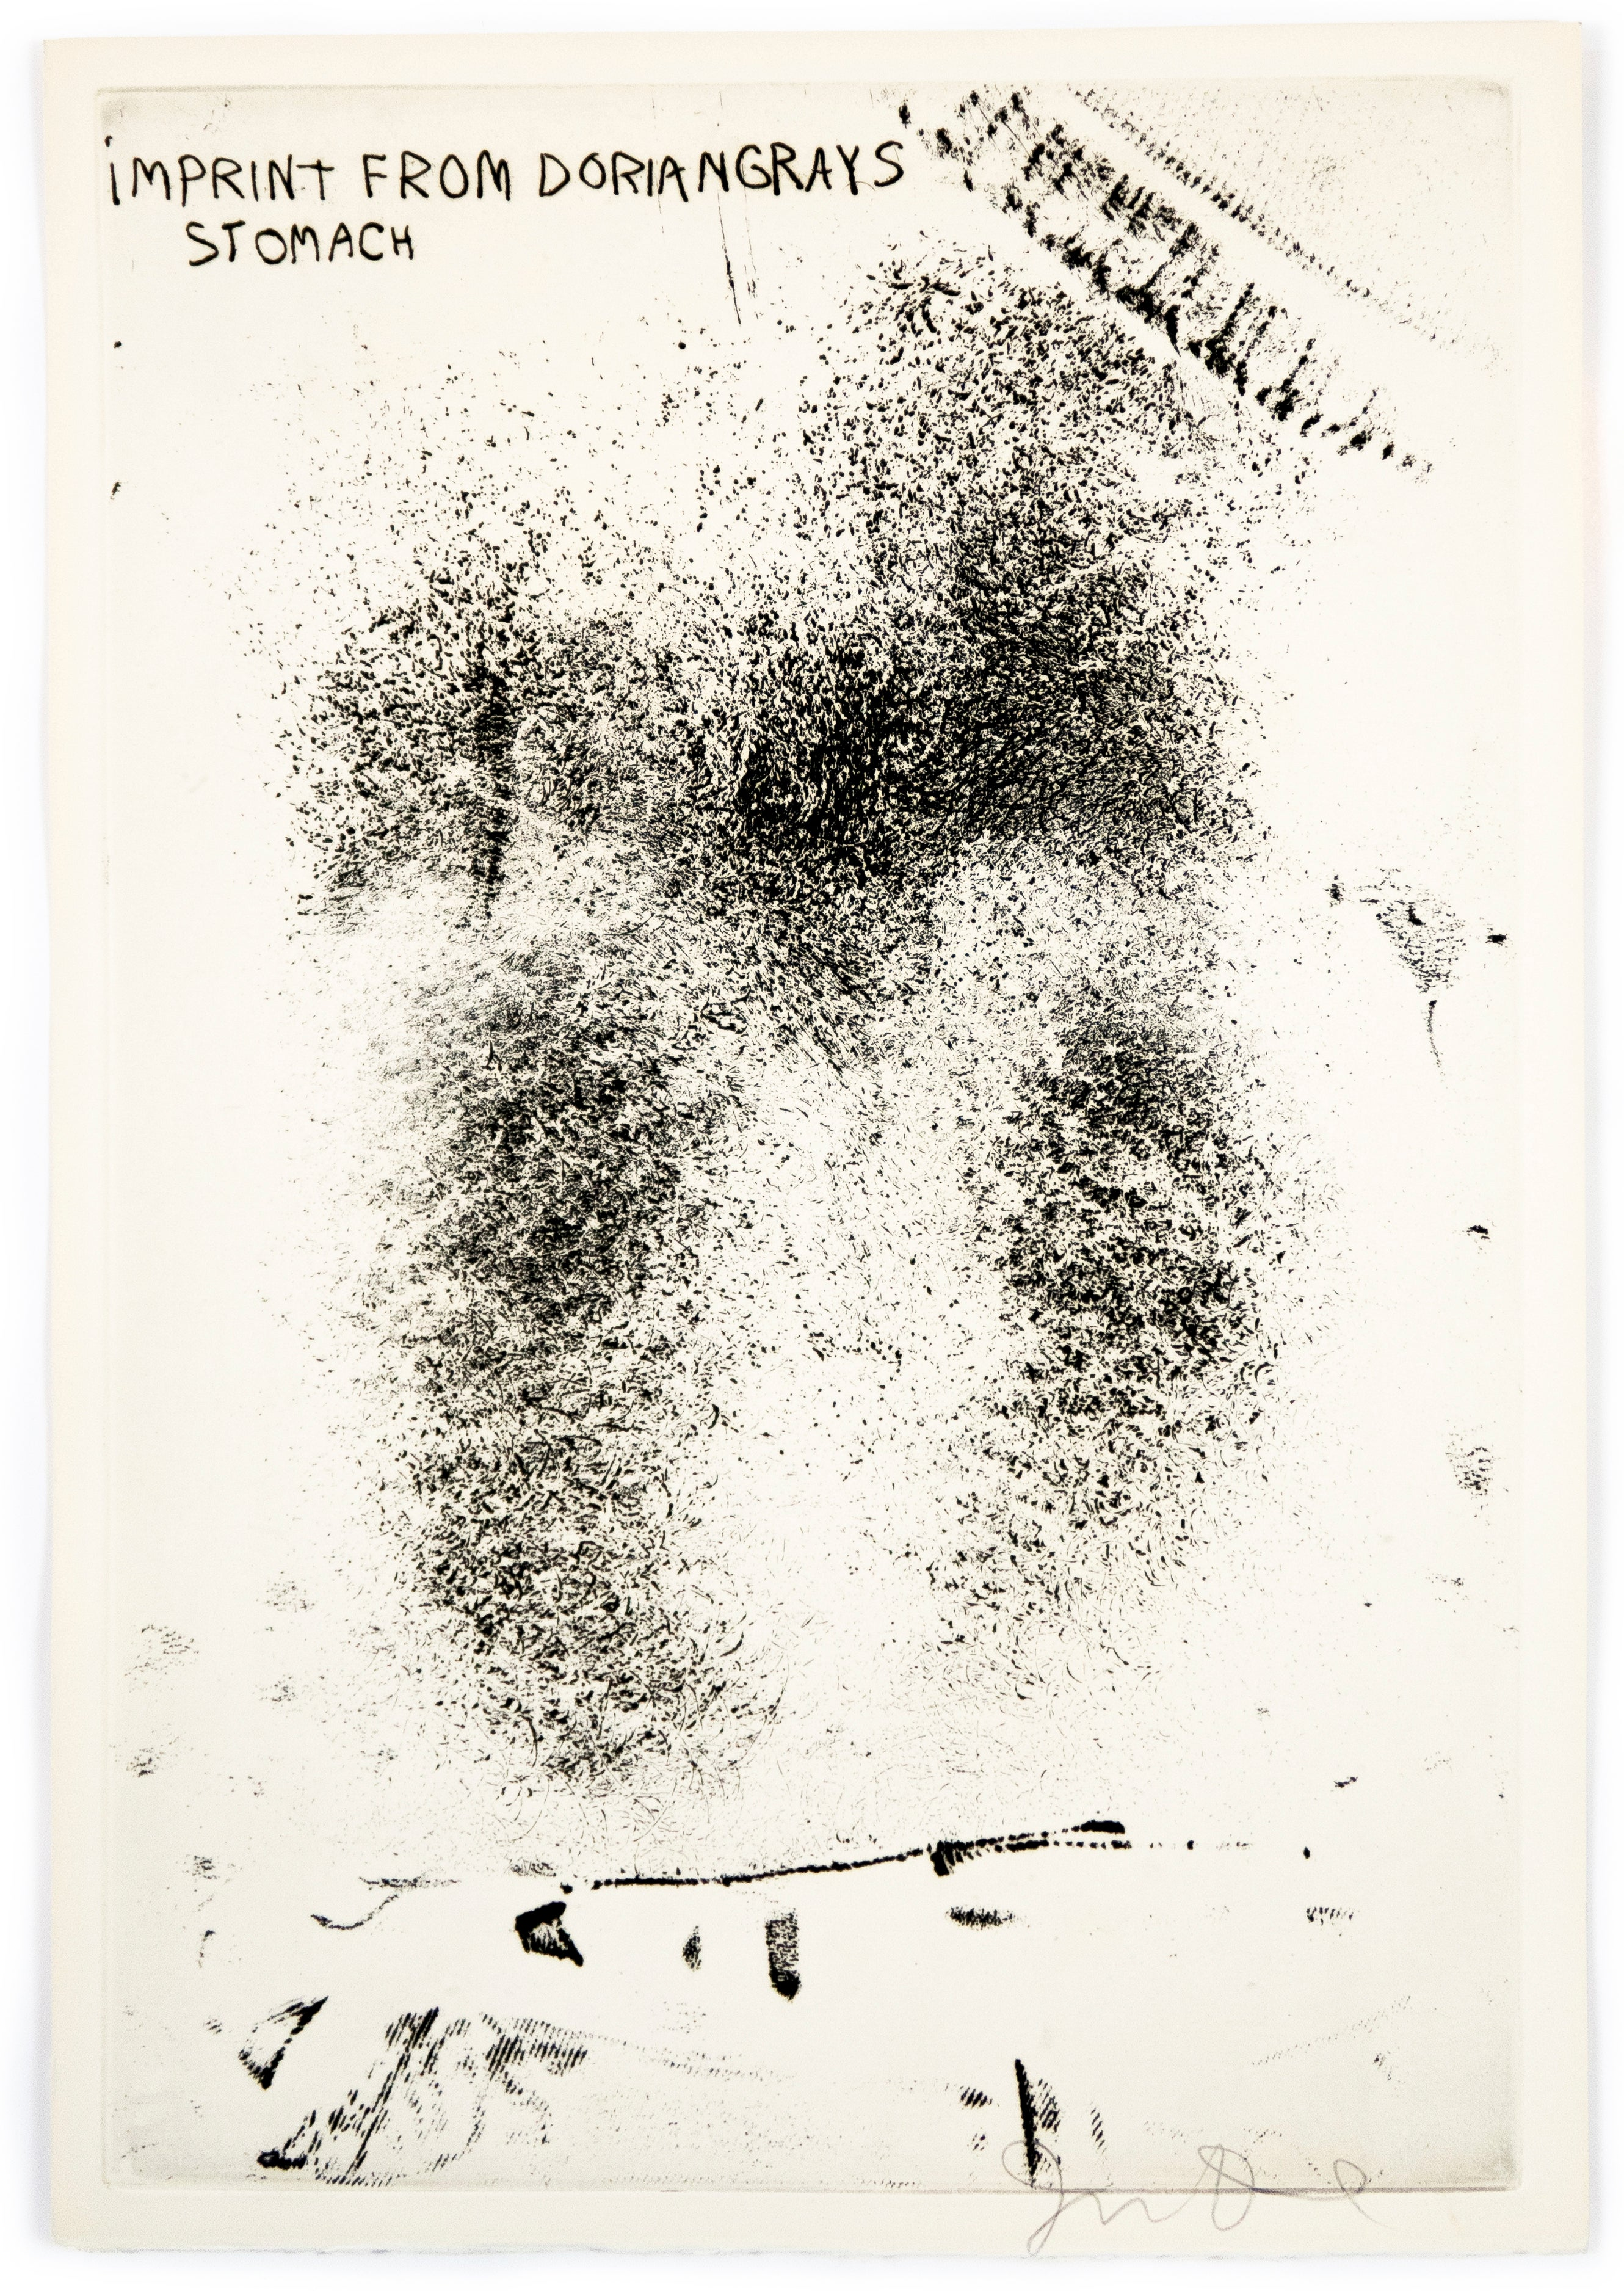 """Imprint from Dorian Gray's Stomach from """"The Picture of Dorian Gray"""""""